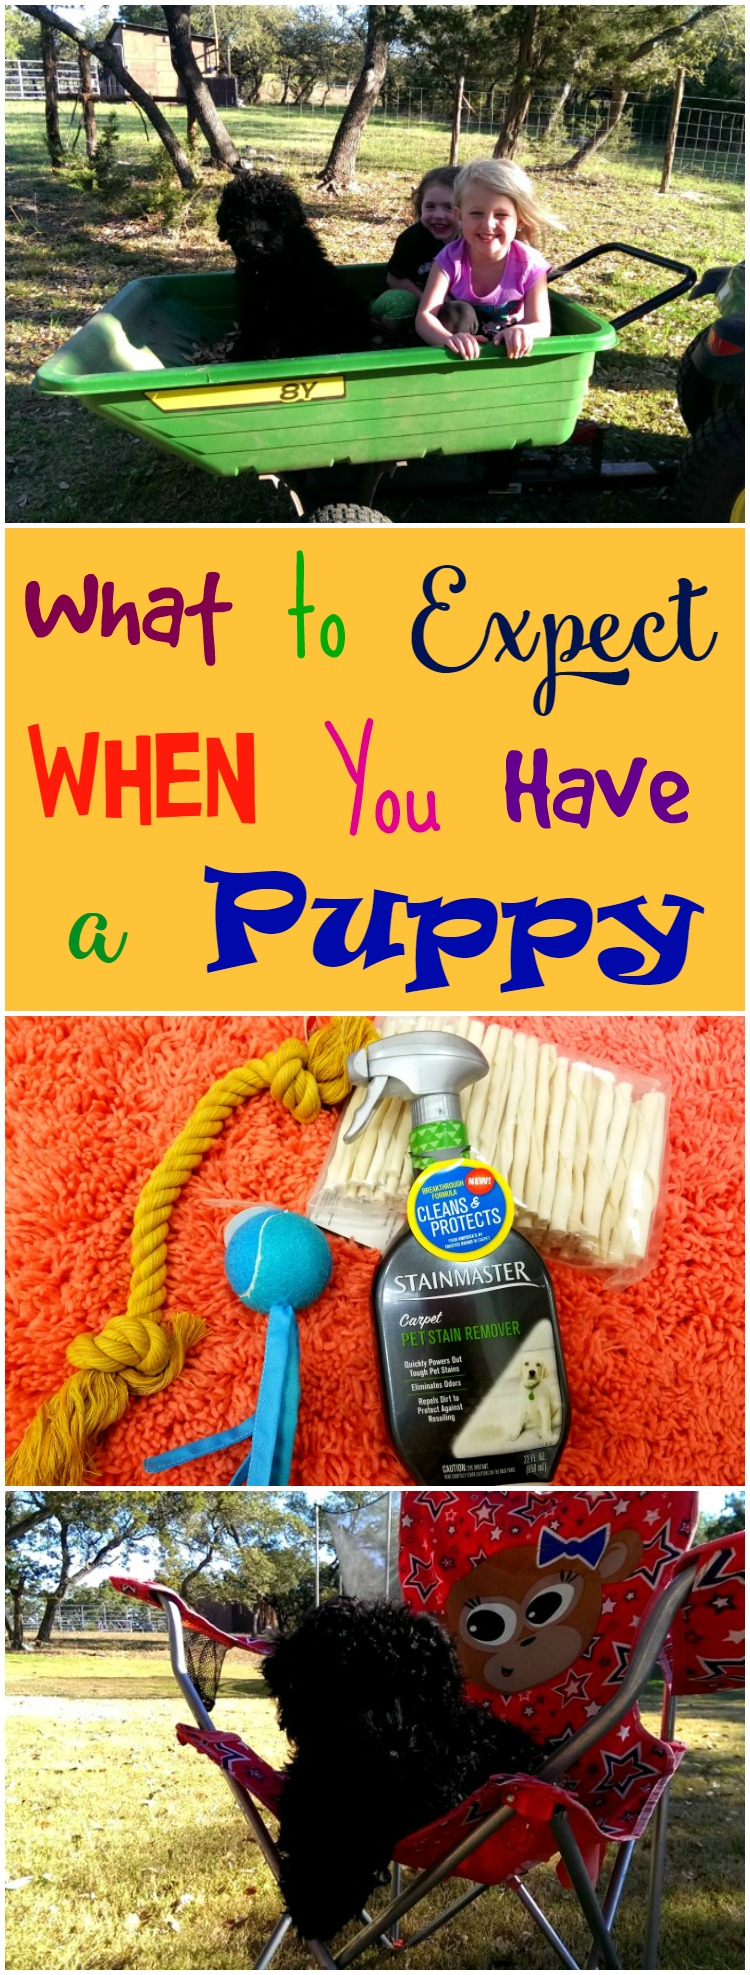 Puppies are hard work. Here are some great things to expect when you bring a puppy home.